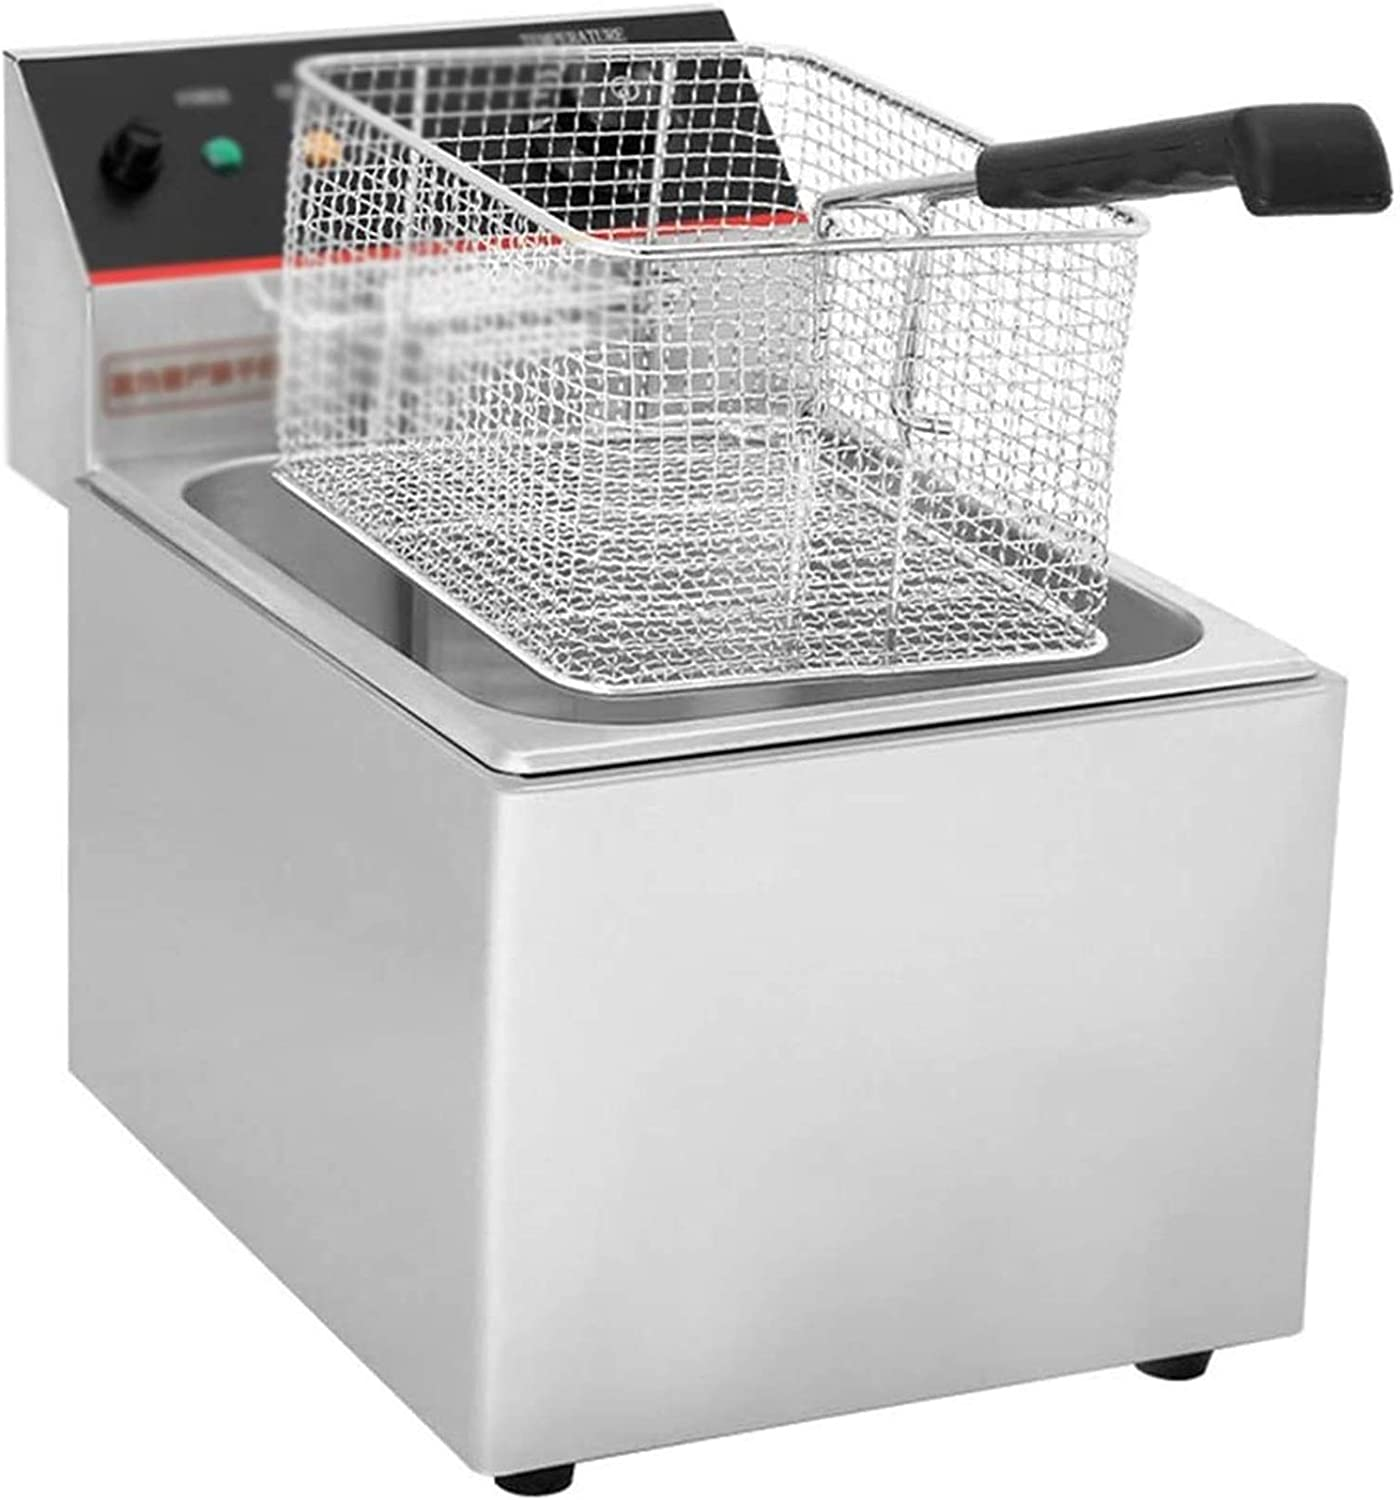 Stainless Steel Deep Fat Fryer, Electric Chip Chicken Fryers For Home&Commercial Kitchen Restaurant Countertop Food Cooking 2117 (Size : Single cylinder)